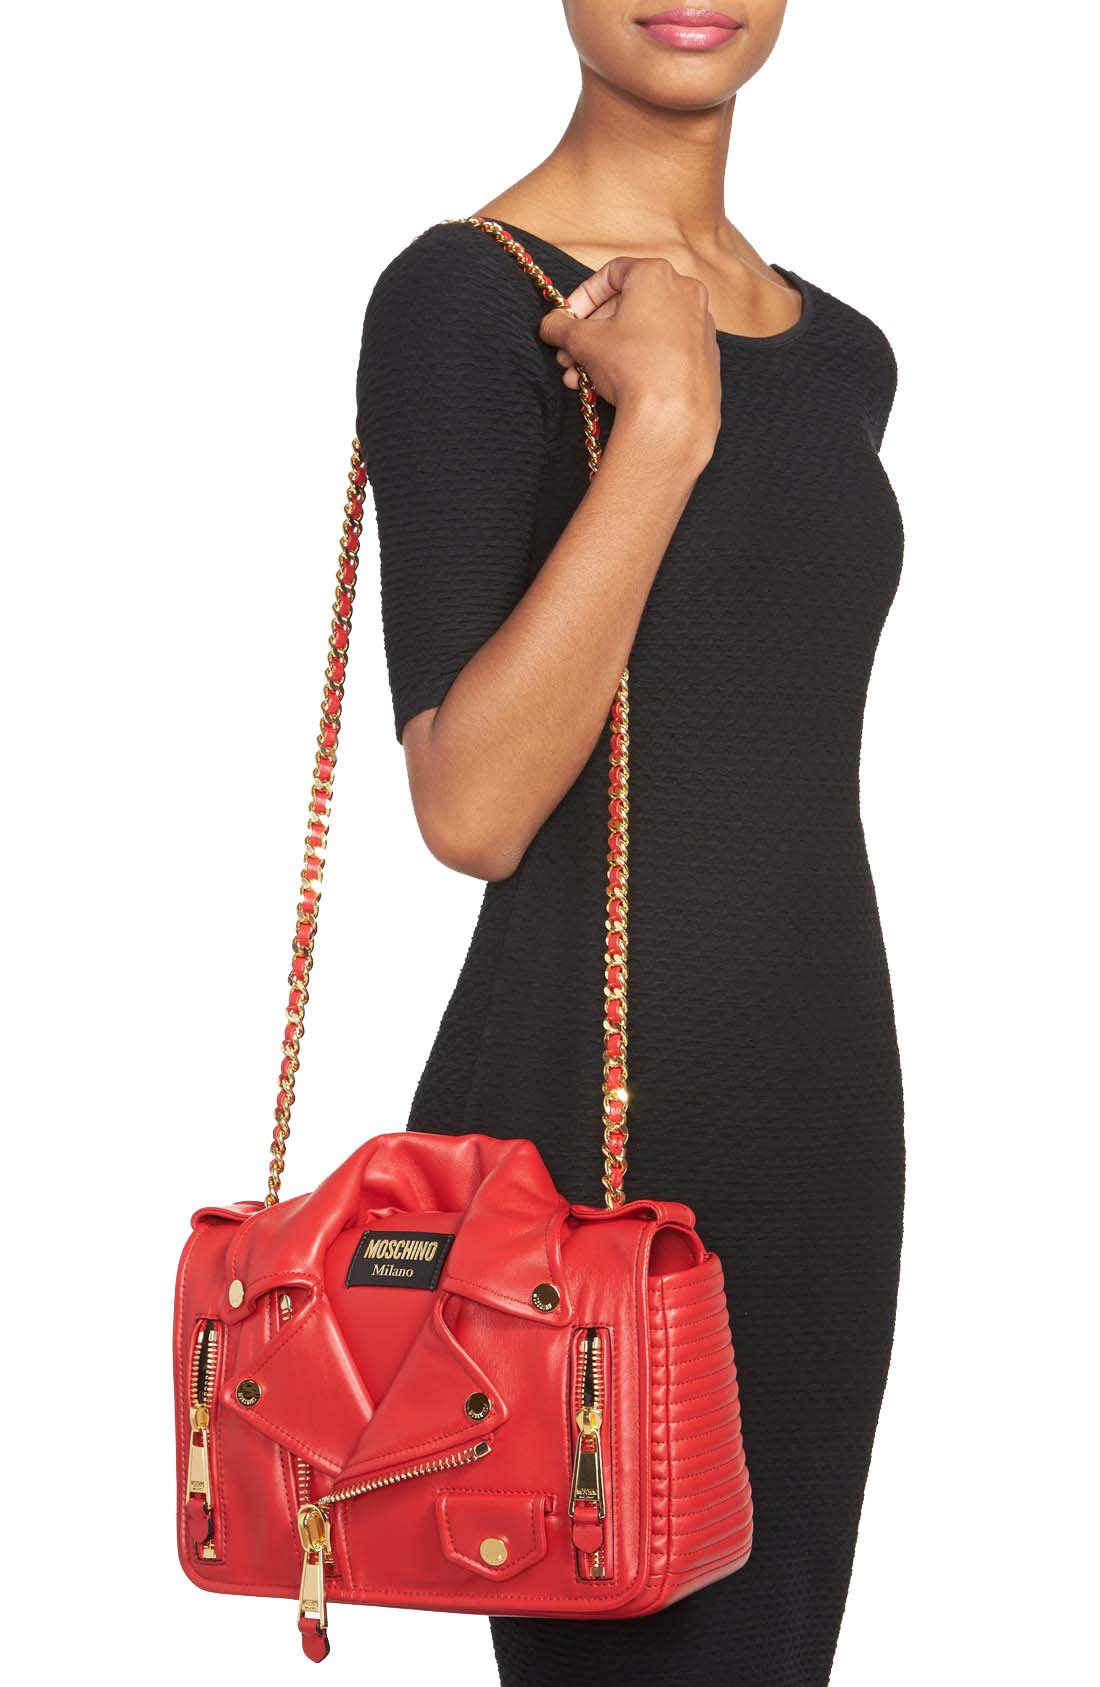 Authentic Moschino Biker Jacket Shoulder Bag Red At